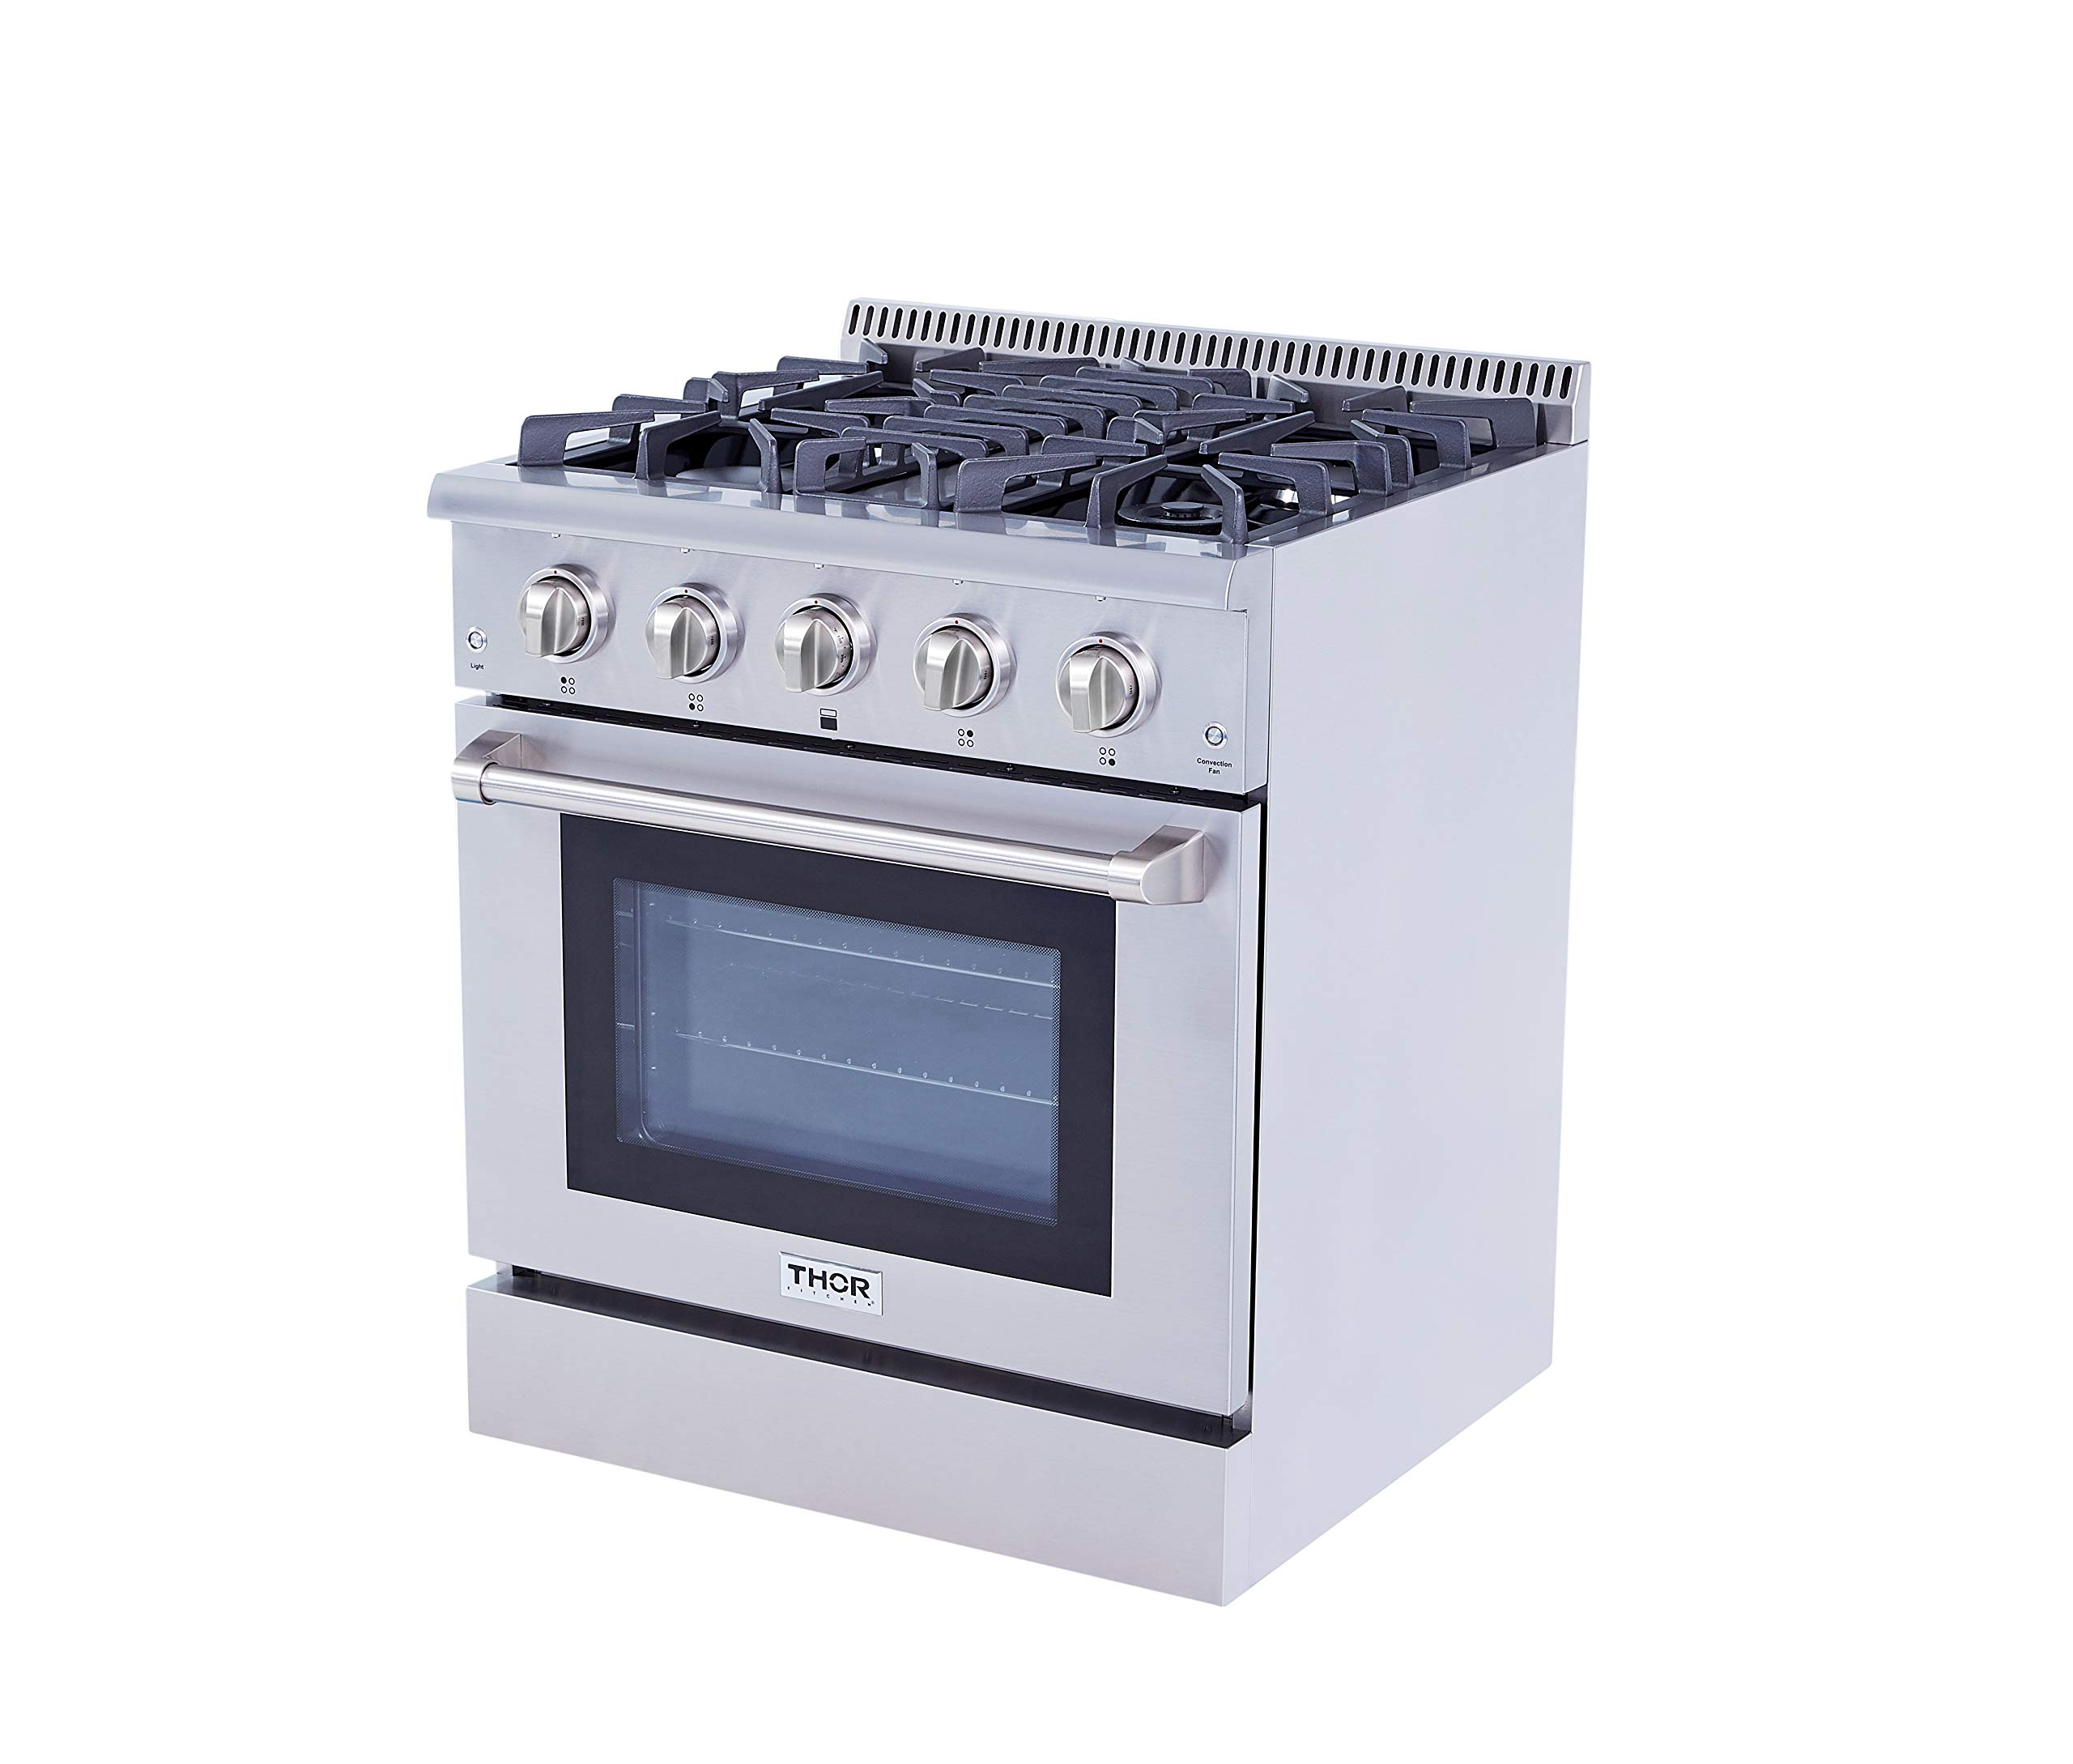 Thor Kitchen 30'' Dual Fuel Range 4 Burner Gas Range Freestanding 4.2 cu. ft. Electric Gas Convection Oven Stainless Steel Automatic re-Ignition Built-in Pro-style HRD3088U